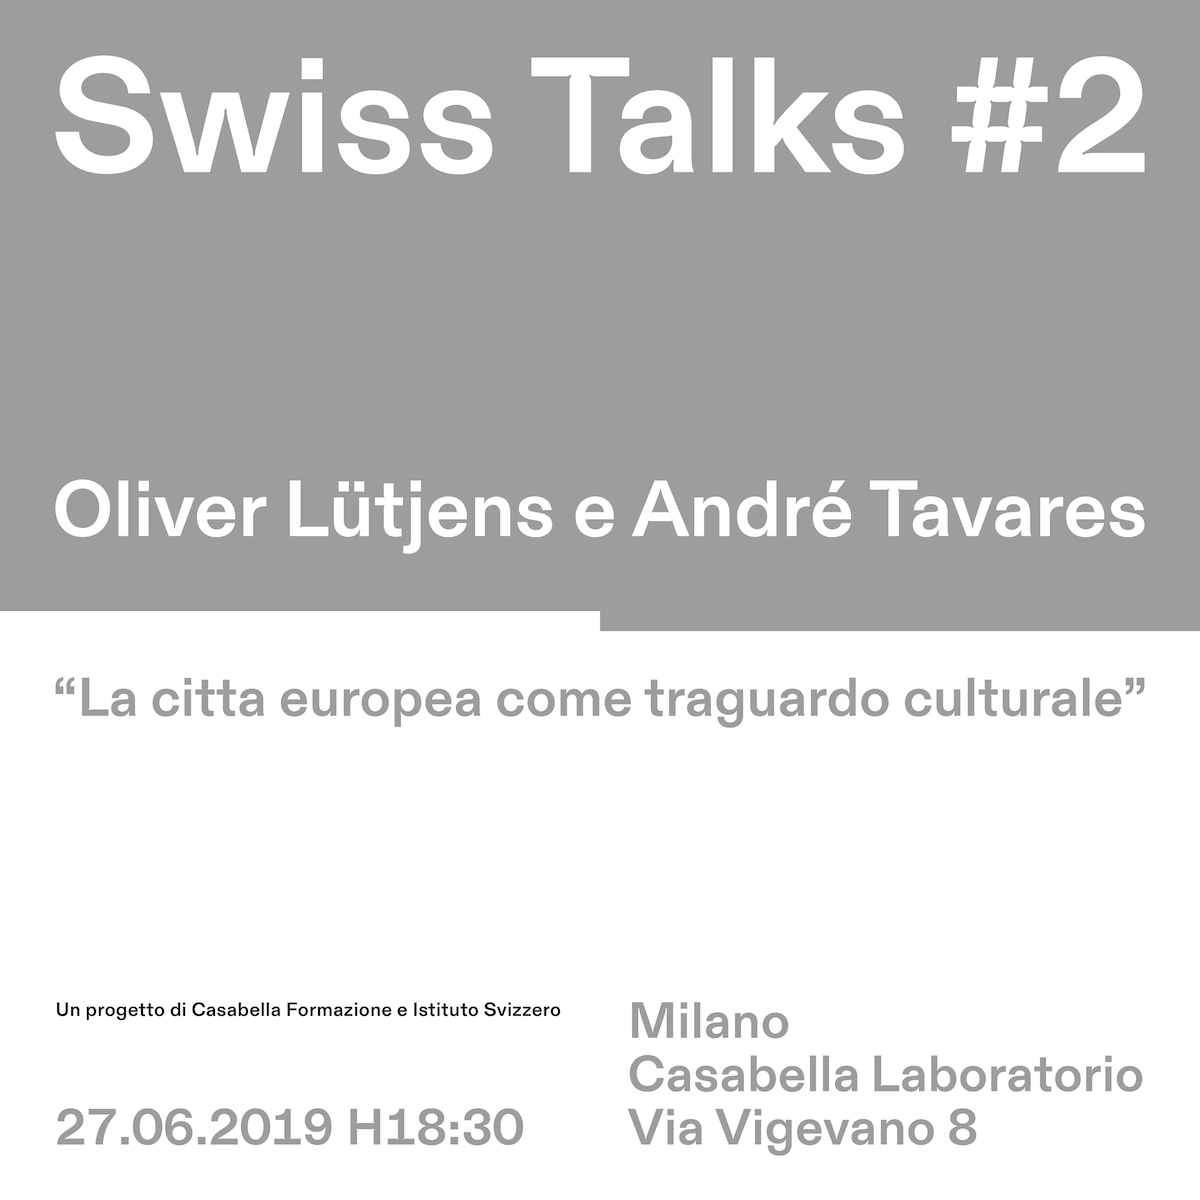 Swiss Talks #2